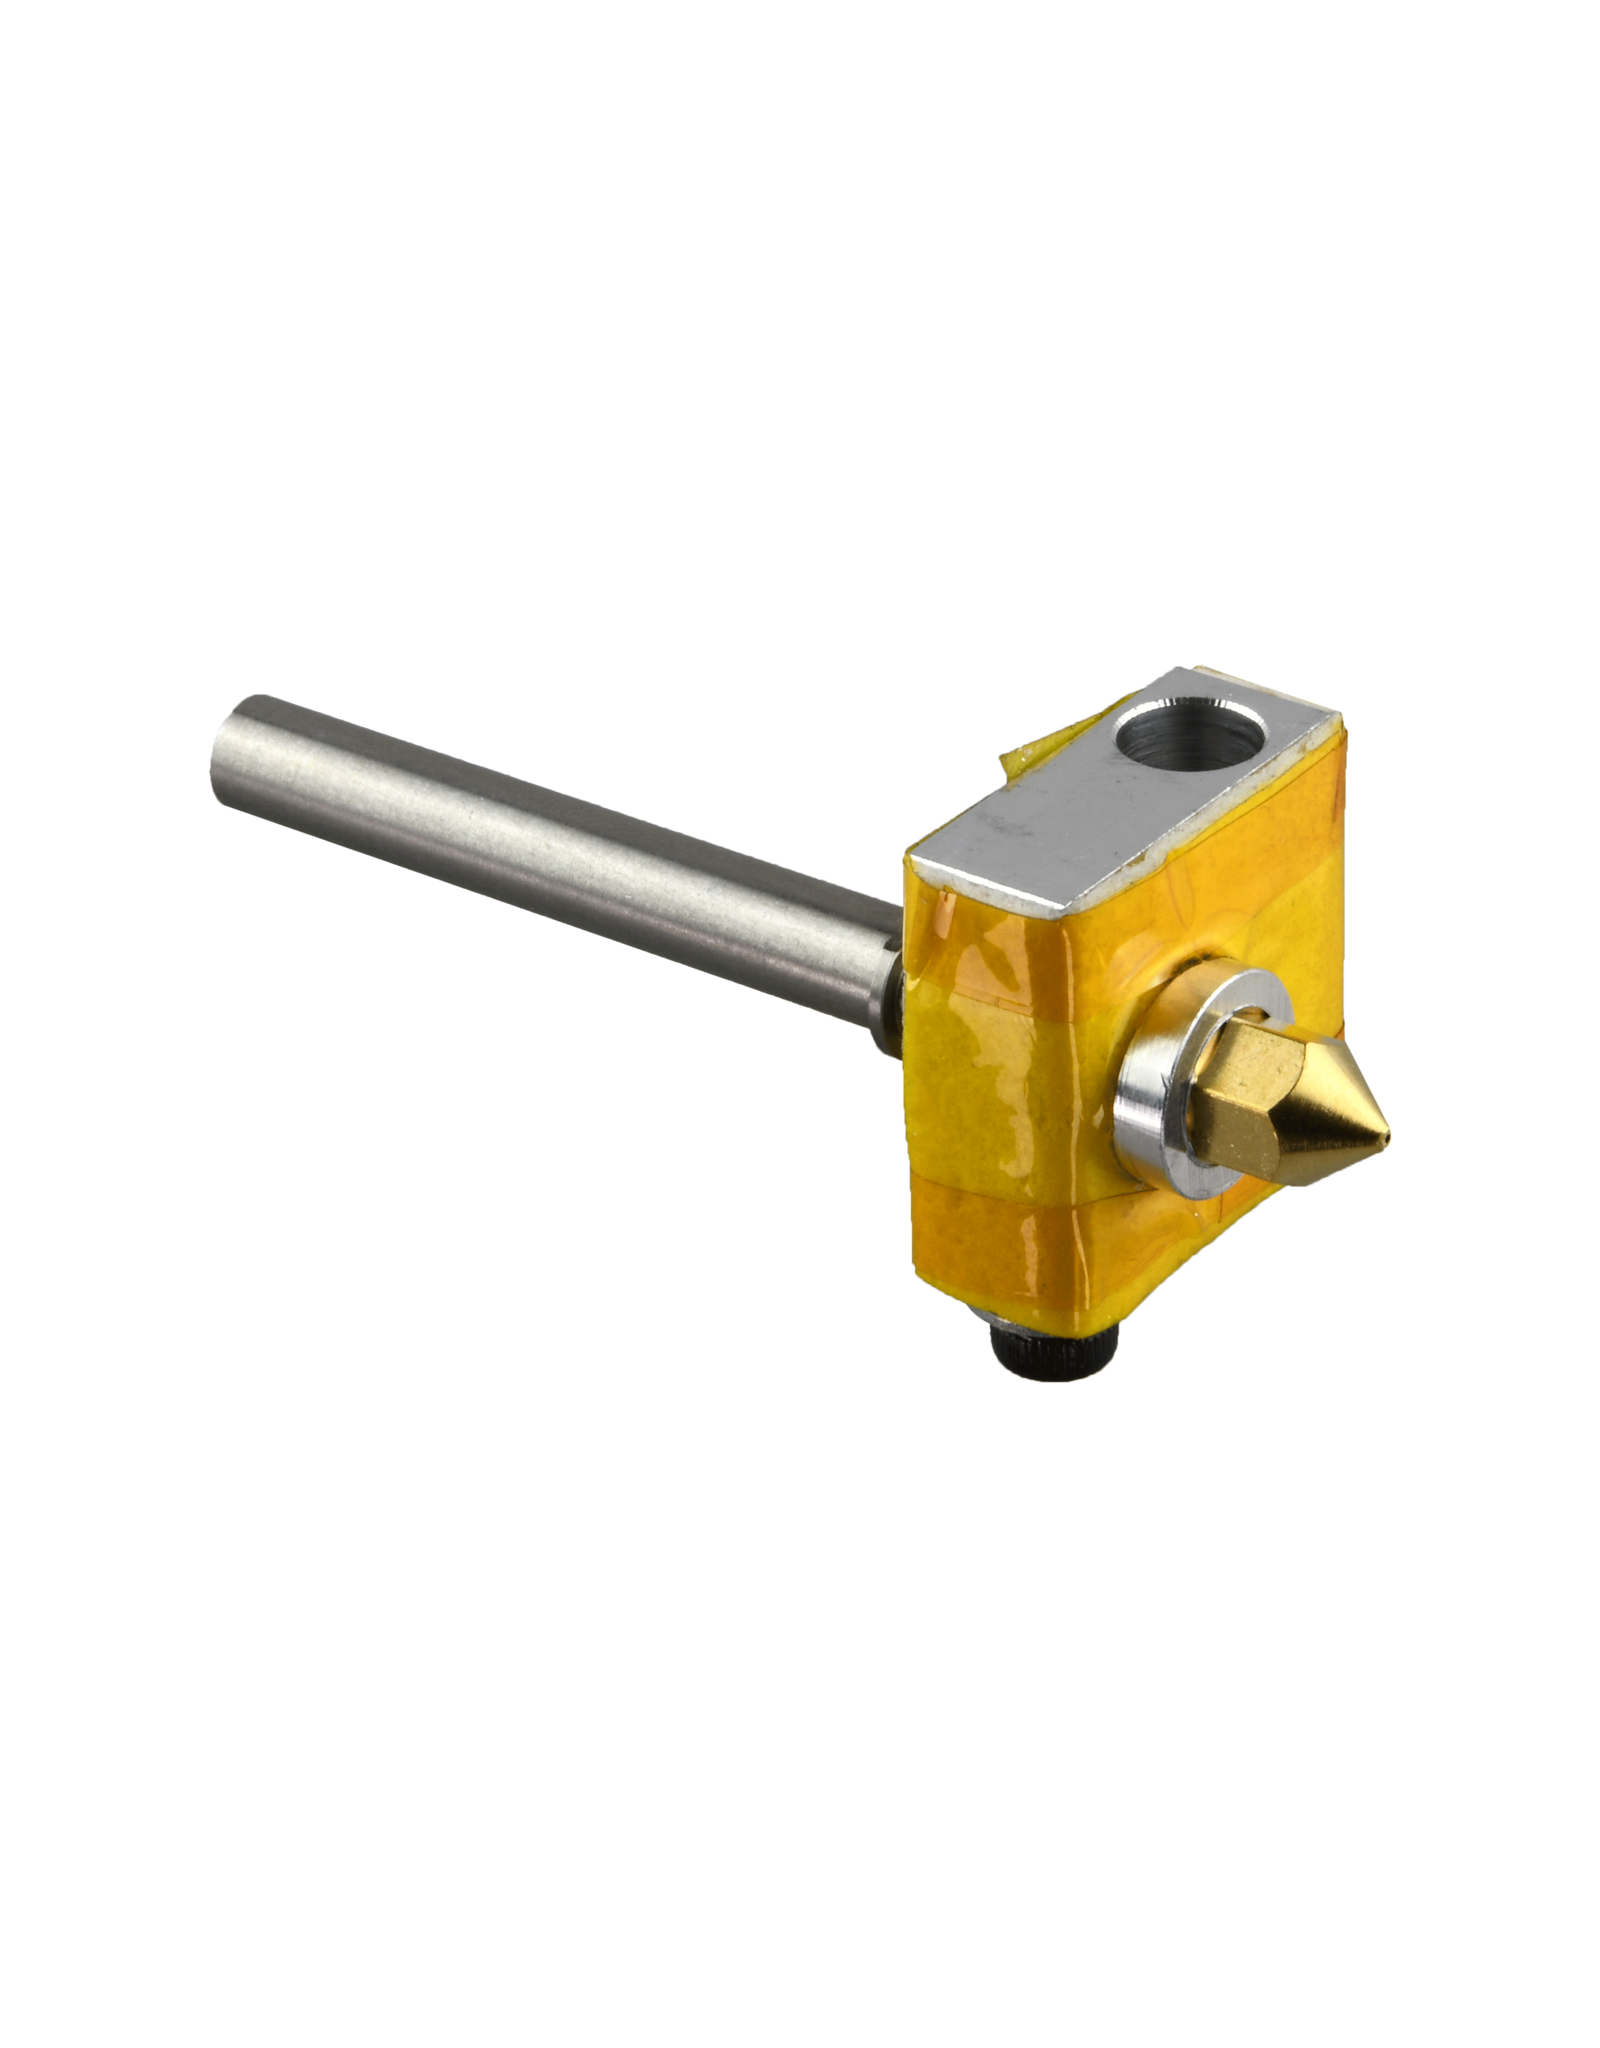 Wanhao WANHAO D12 230 - COMPLETE HOT-END ASSEMBLY (SECOND VERSION)